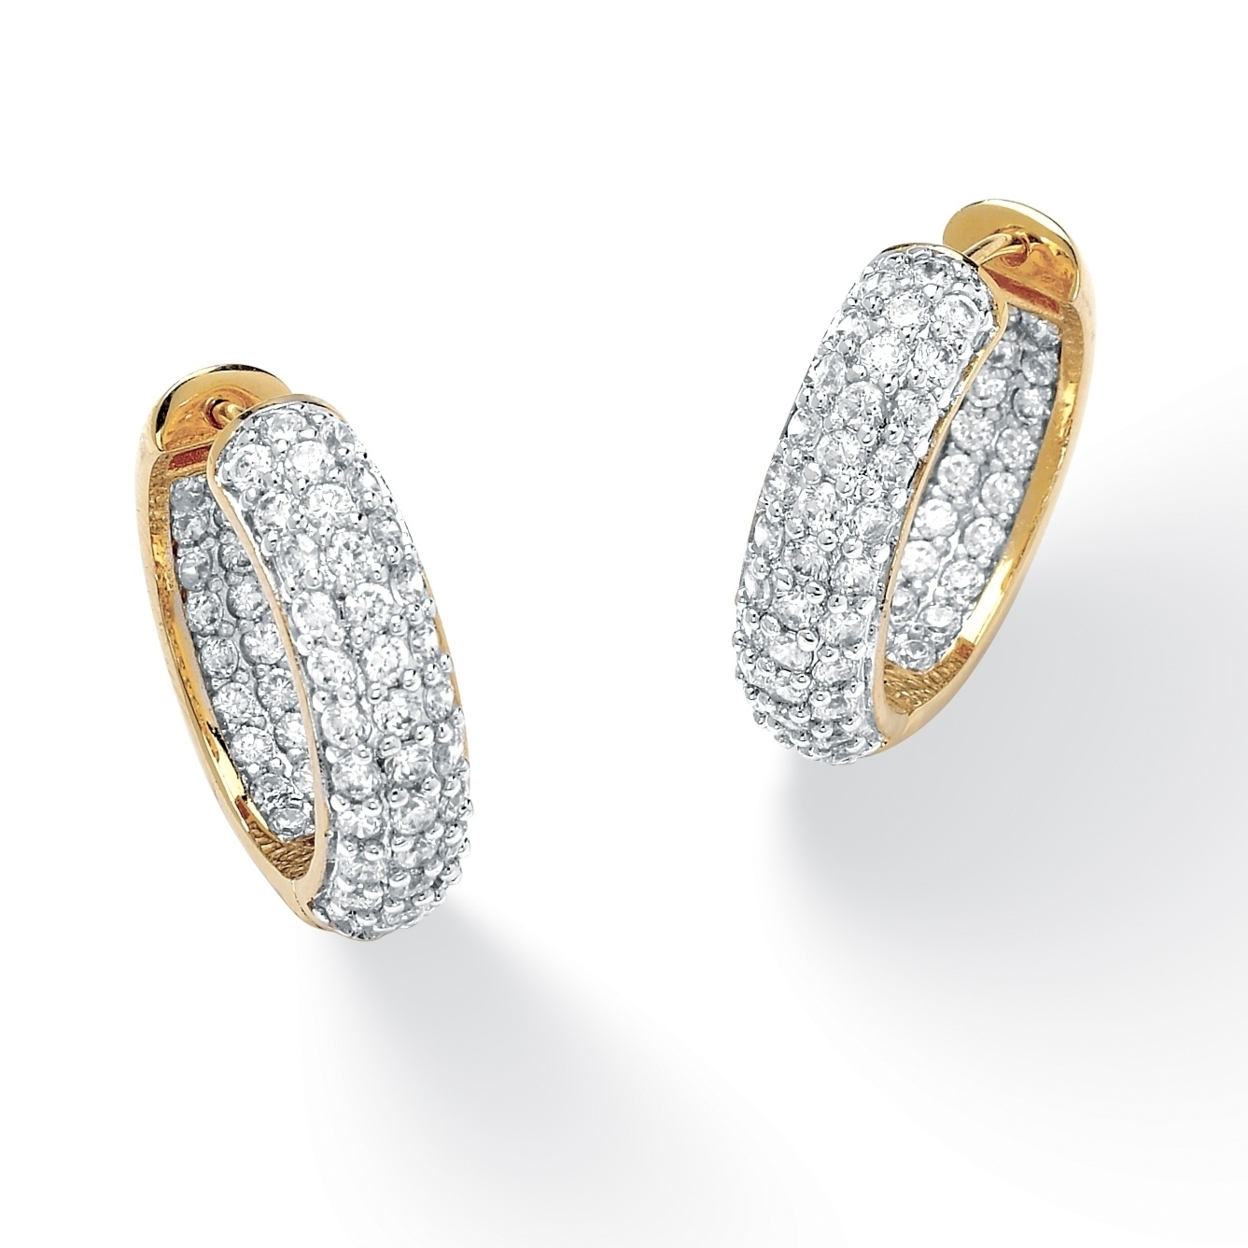 3.21 Tcw Round Cubic Zirconia 14k Gold-colored Huggie-style Inside-out Hoop Earrings inside out